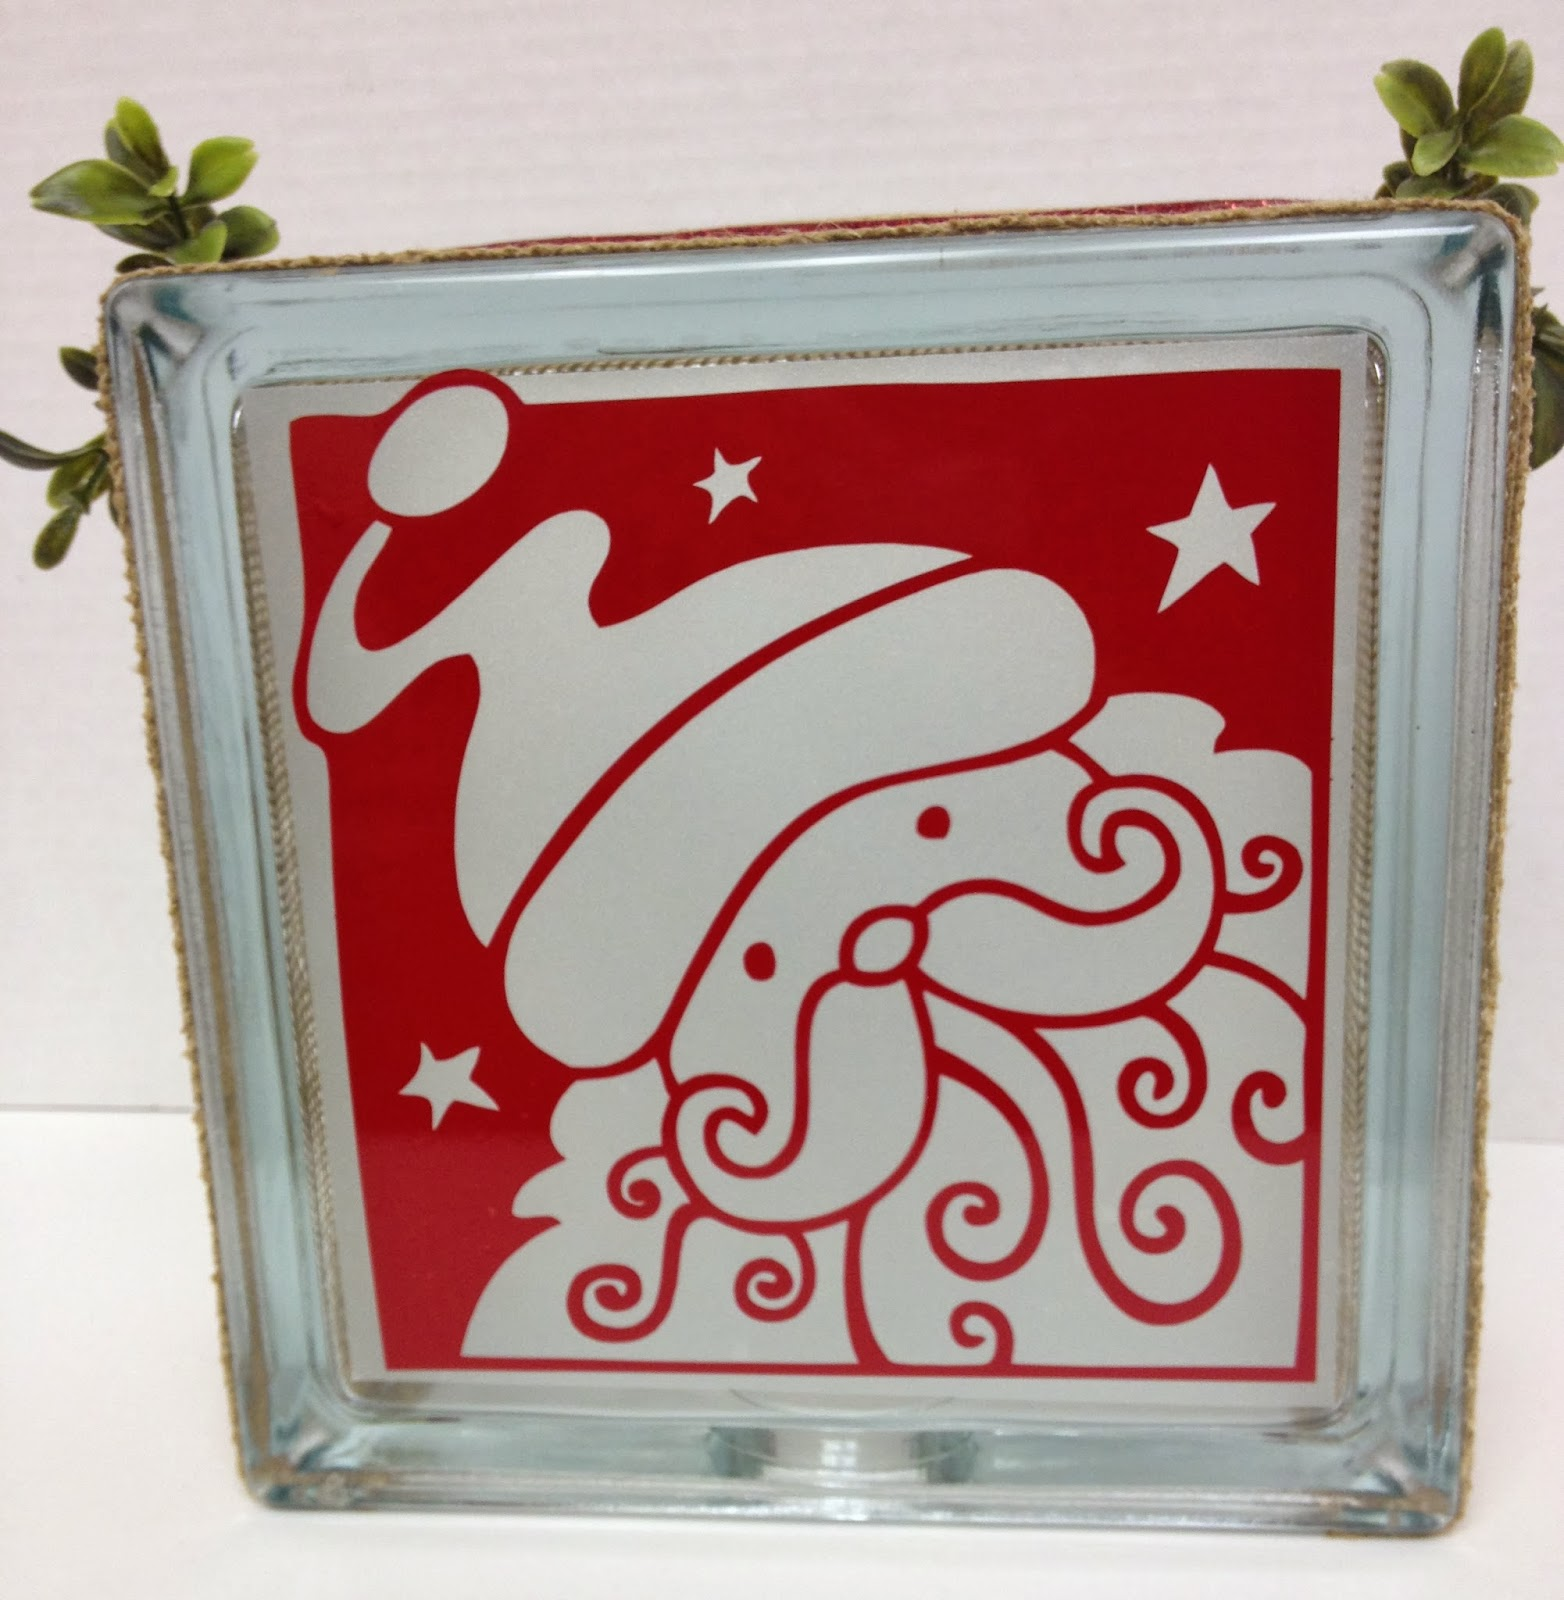 Paper craft studios new glass block ideas for Glass block for crafts